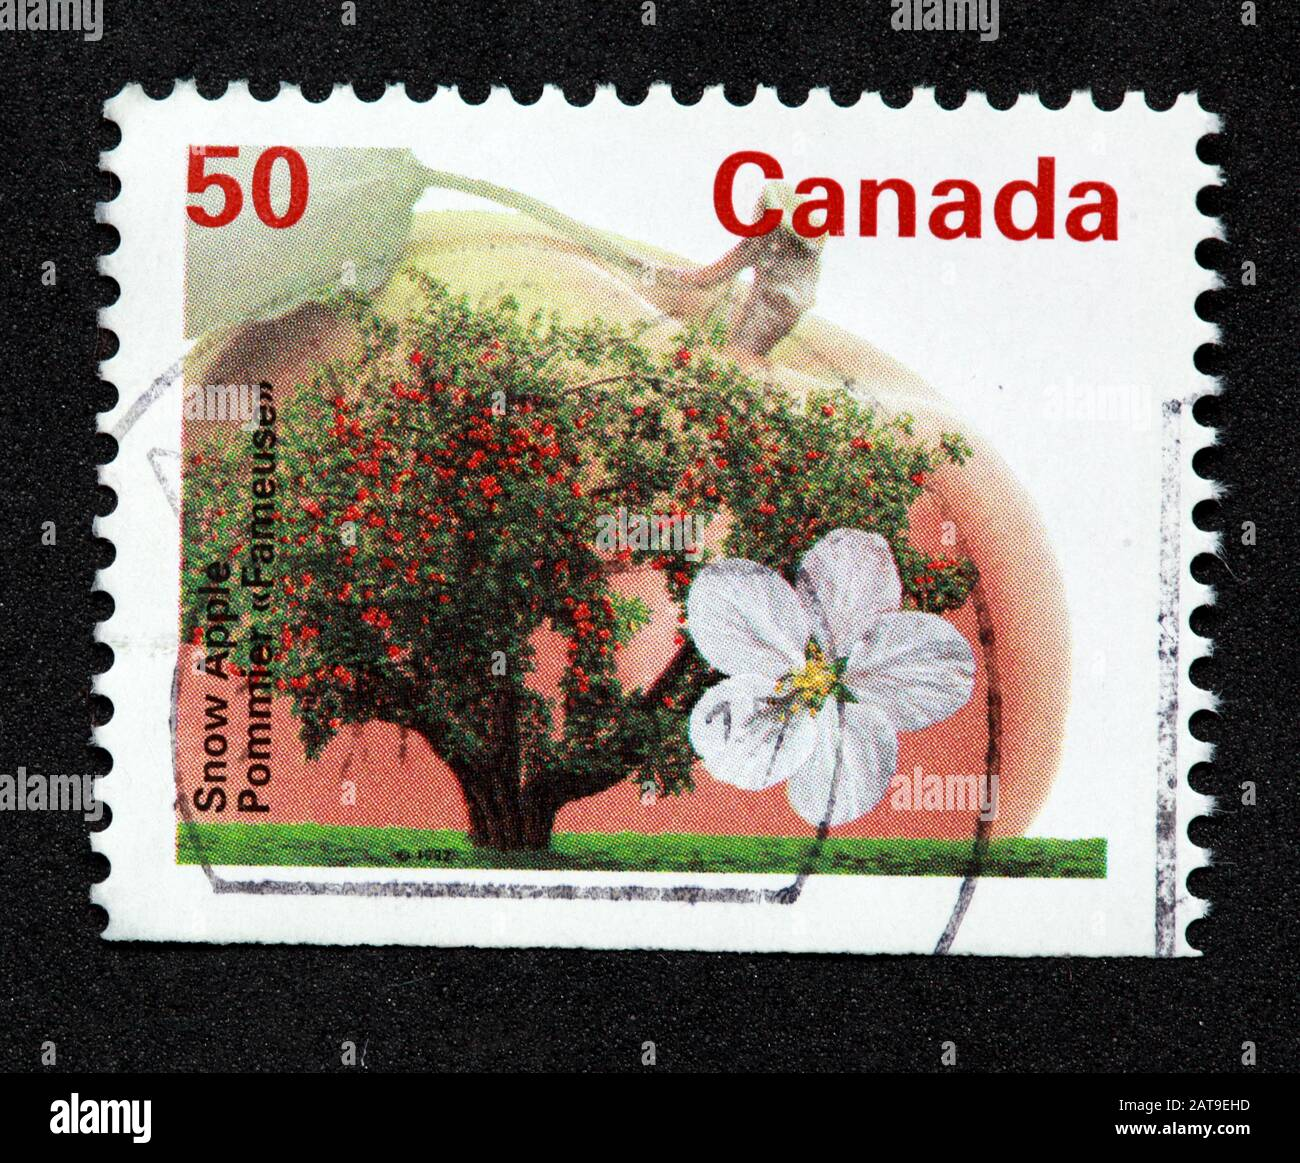 Hotpixuk,@Hotpixuk,GoTonySmith,stamp,postal,franked,frank,used stamps,used franked,used,franked stamp,from envelope,history,historic,old,poste,post office,communications,postage,sending letters,sending,parcels,Canada 50c,50cent,Snow Apple,flower,tree,plant,shrub,Canadian